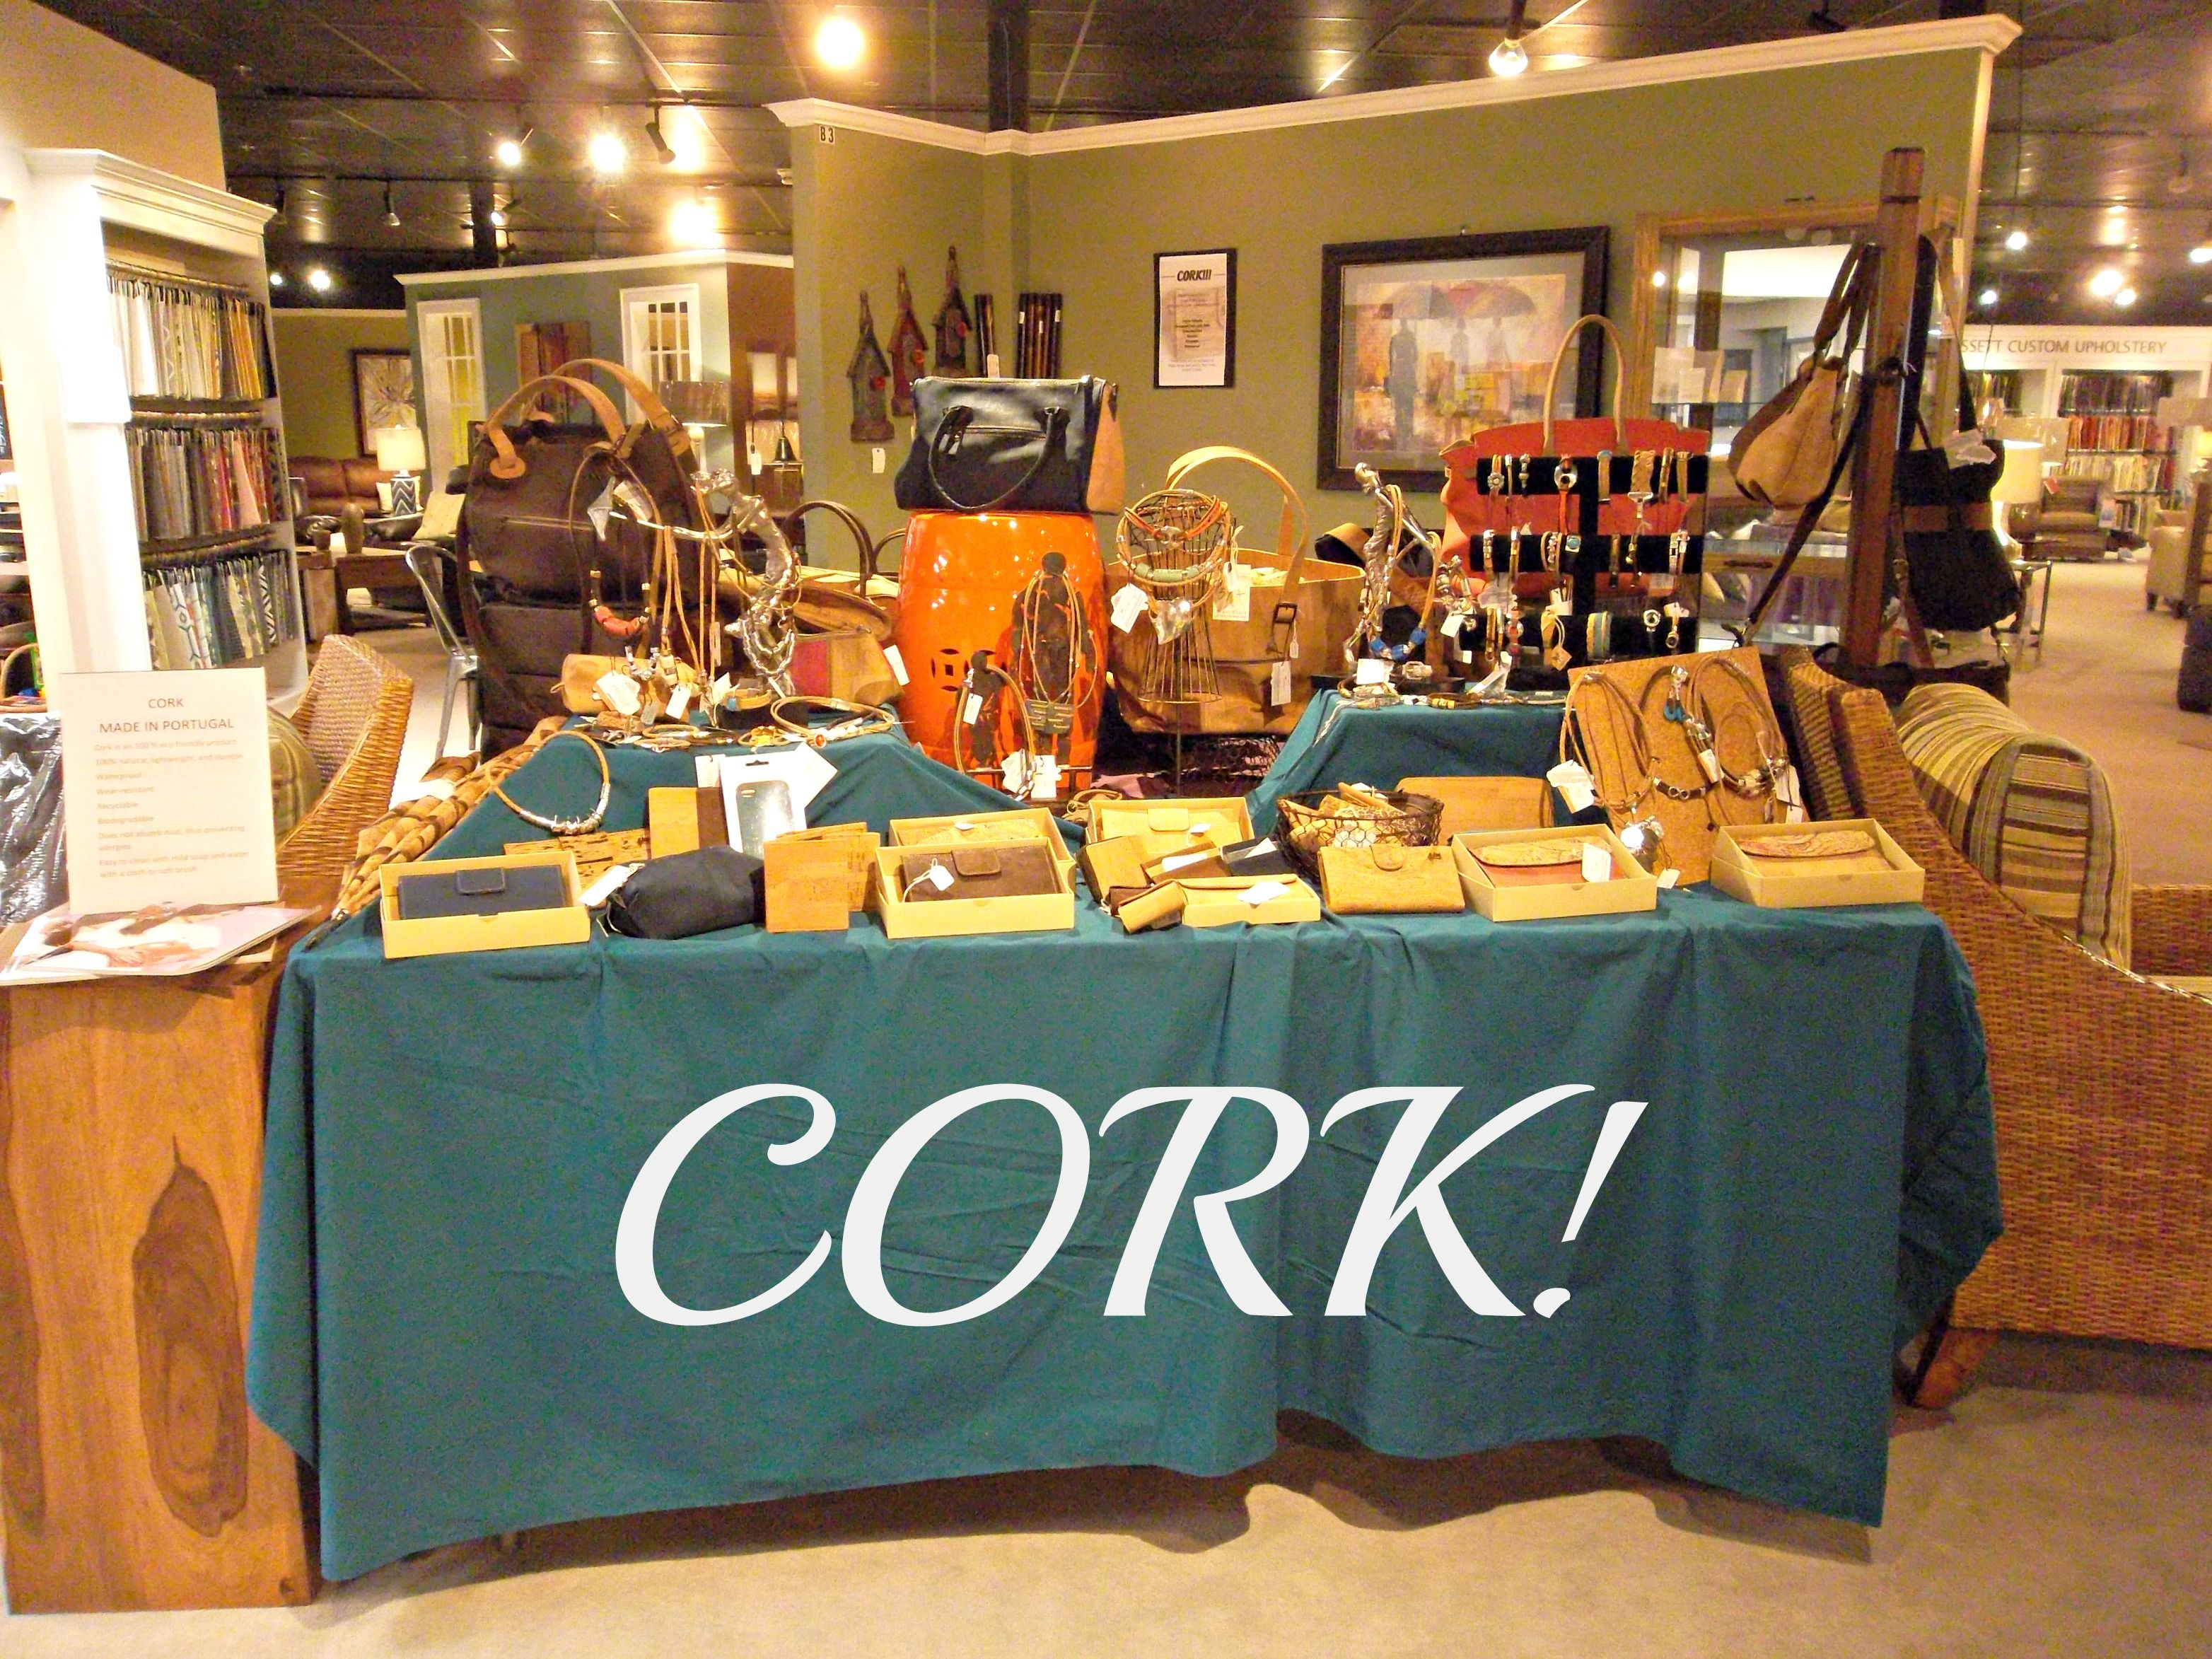 We Have Some Beautifully Crafted Cork Merchandise Here At Regal House Furniture From Handbags And Coin Purses To Necklaces Bracelets Even Iphone